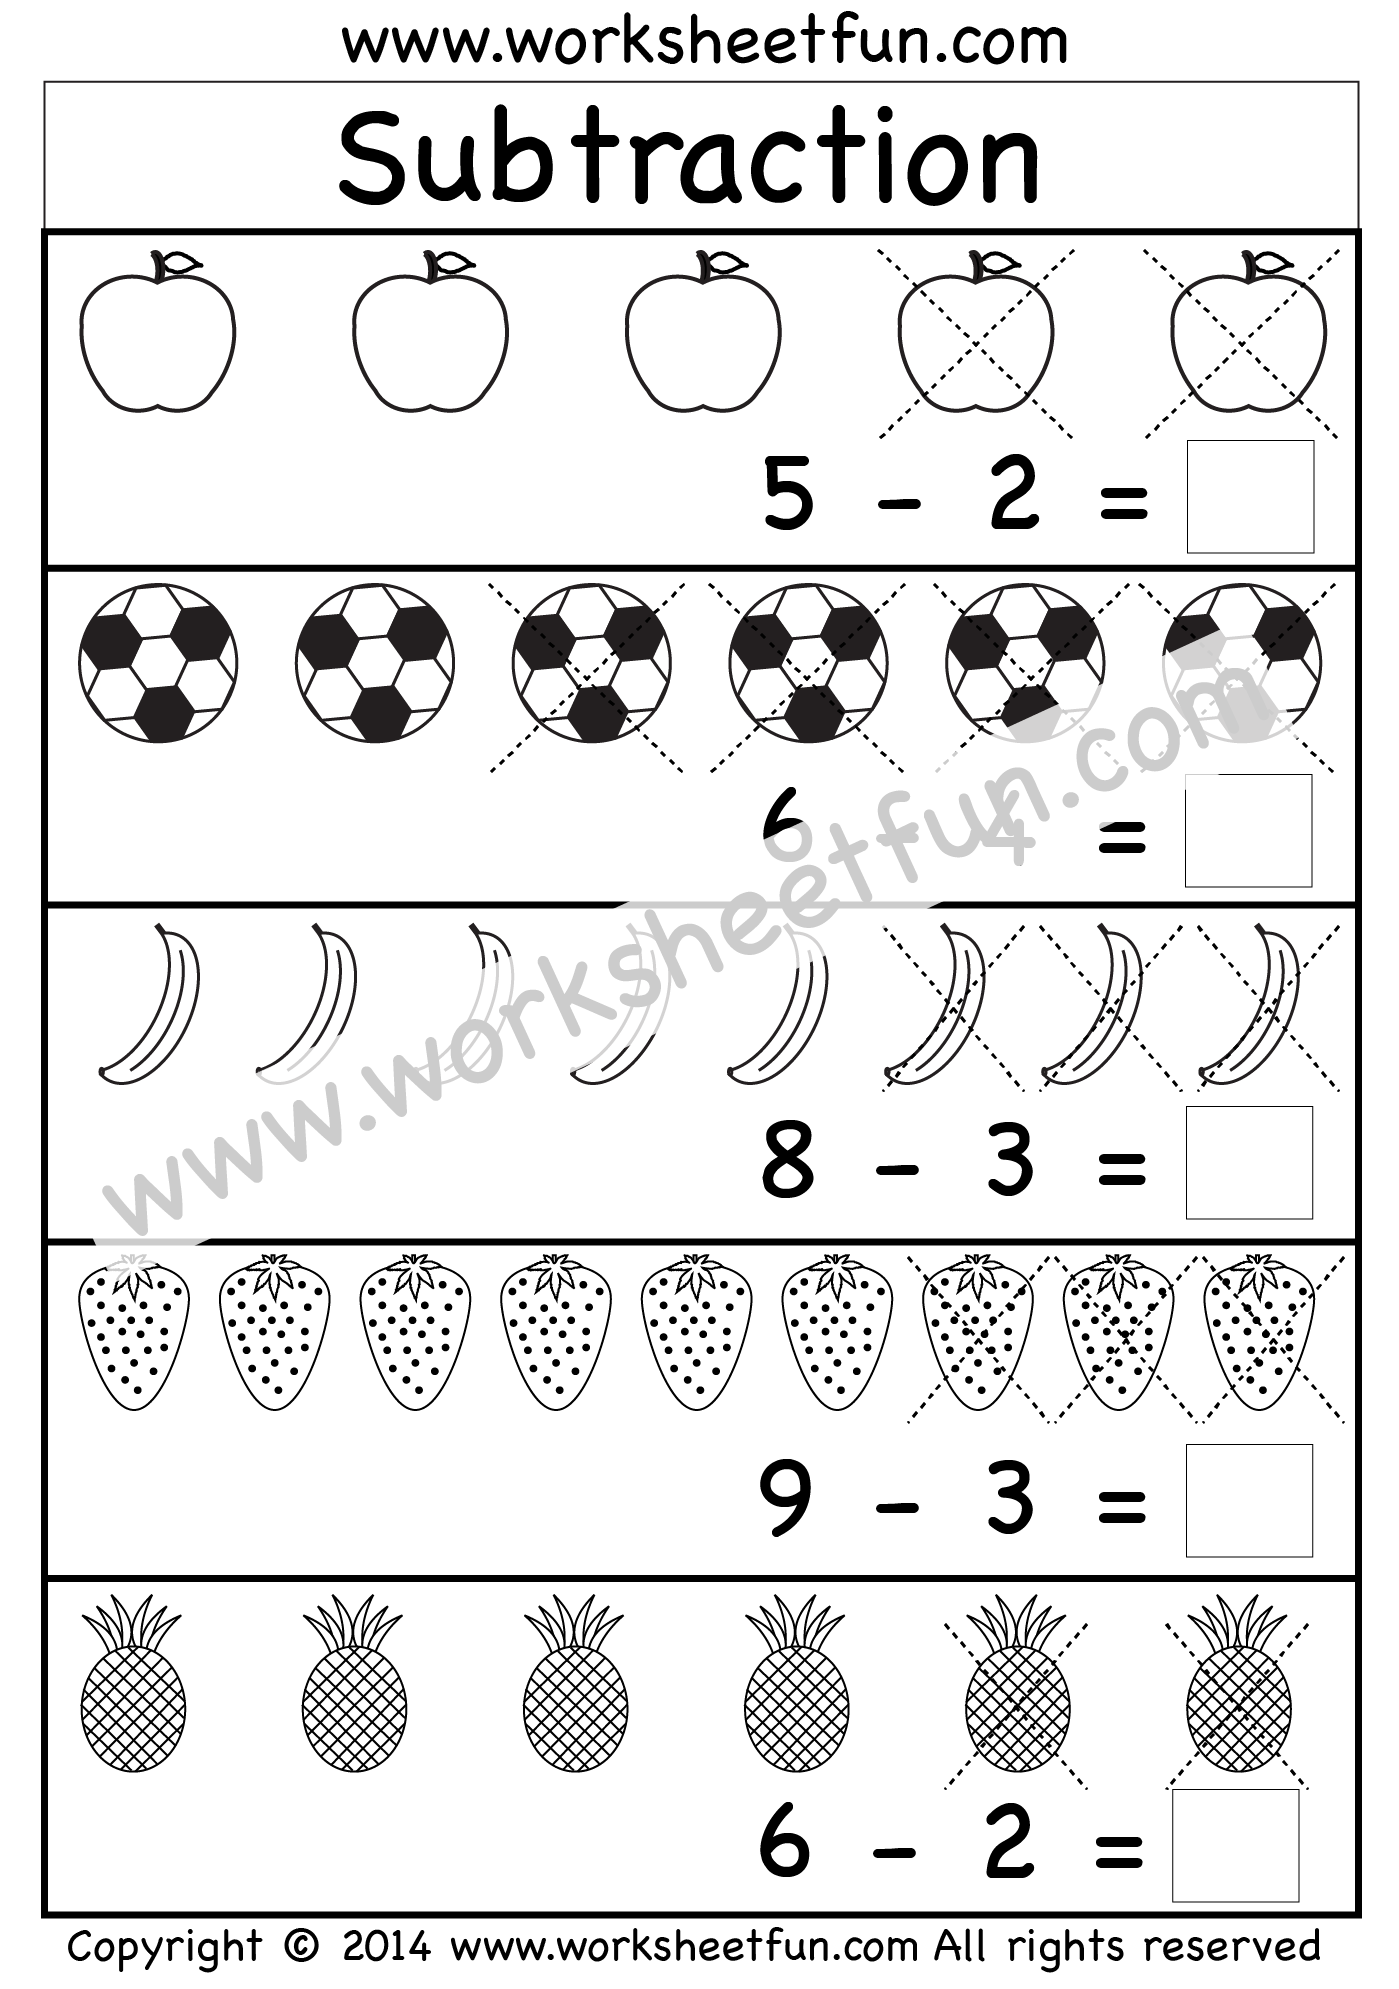 first grade worksheets  primary resources  pinterest  worksheets  first grade worksheets first grade worksheets pre k worksheets first  grade worksheets subtraction worksheets free printable